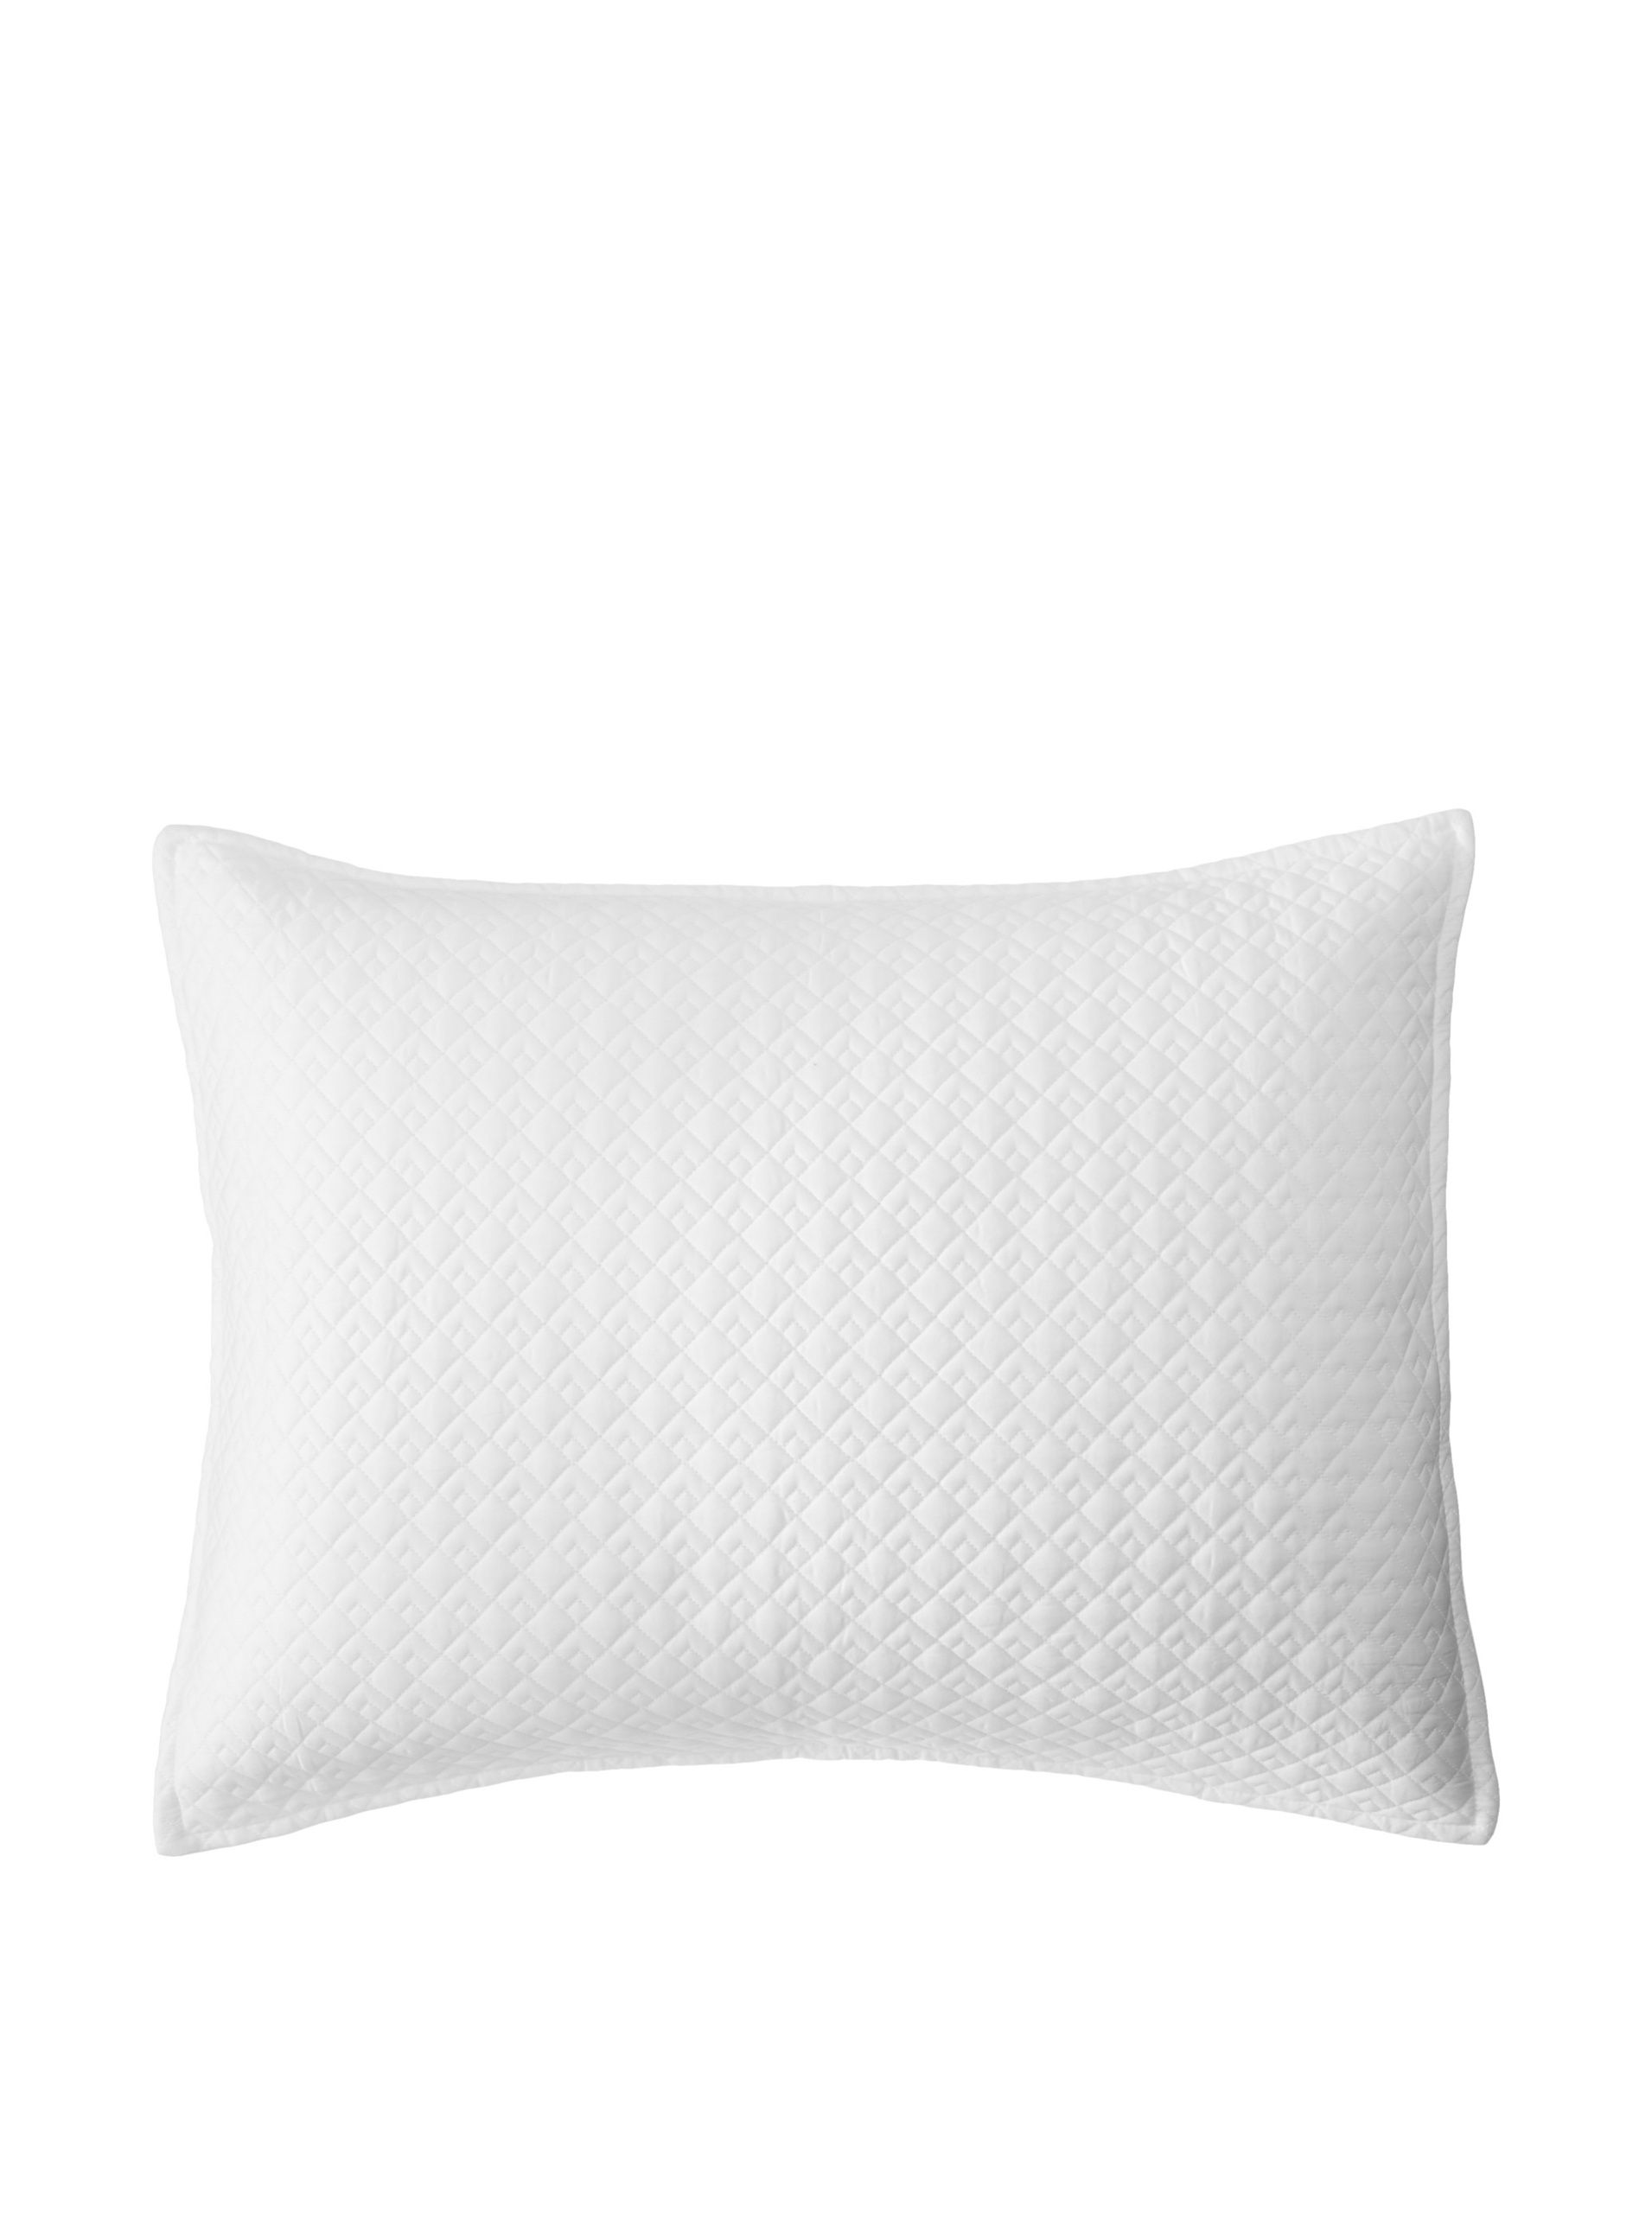 Vera Wang Double Diamond Sham (White) Simple yet elegant, add texture to your bedding with this double diamond quilted pattern sham with envelope closure DiamondHome #Bed